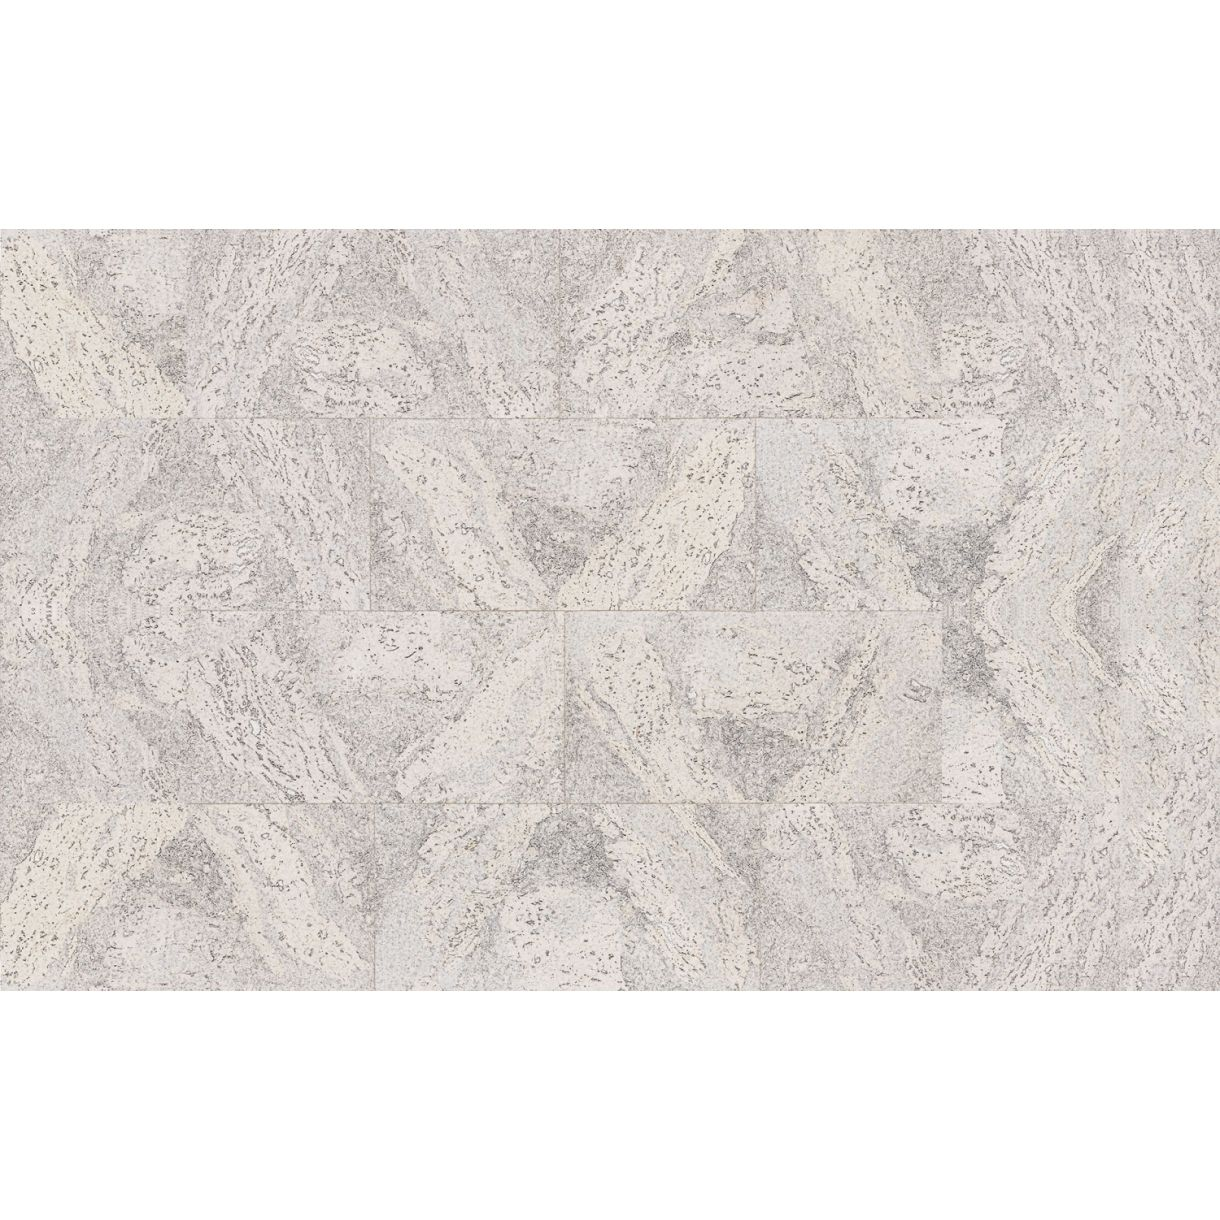 Decorative cork wall tiles FLORES WHITE 3x300x600mm - package 1,98 ...